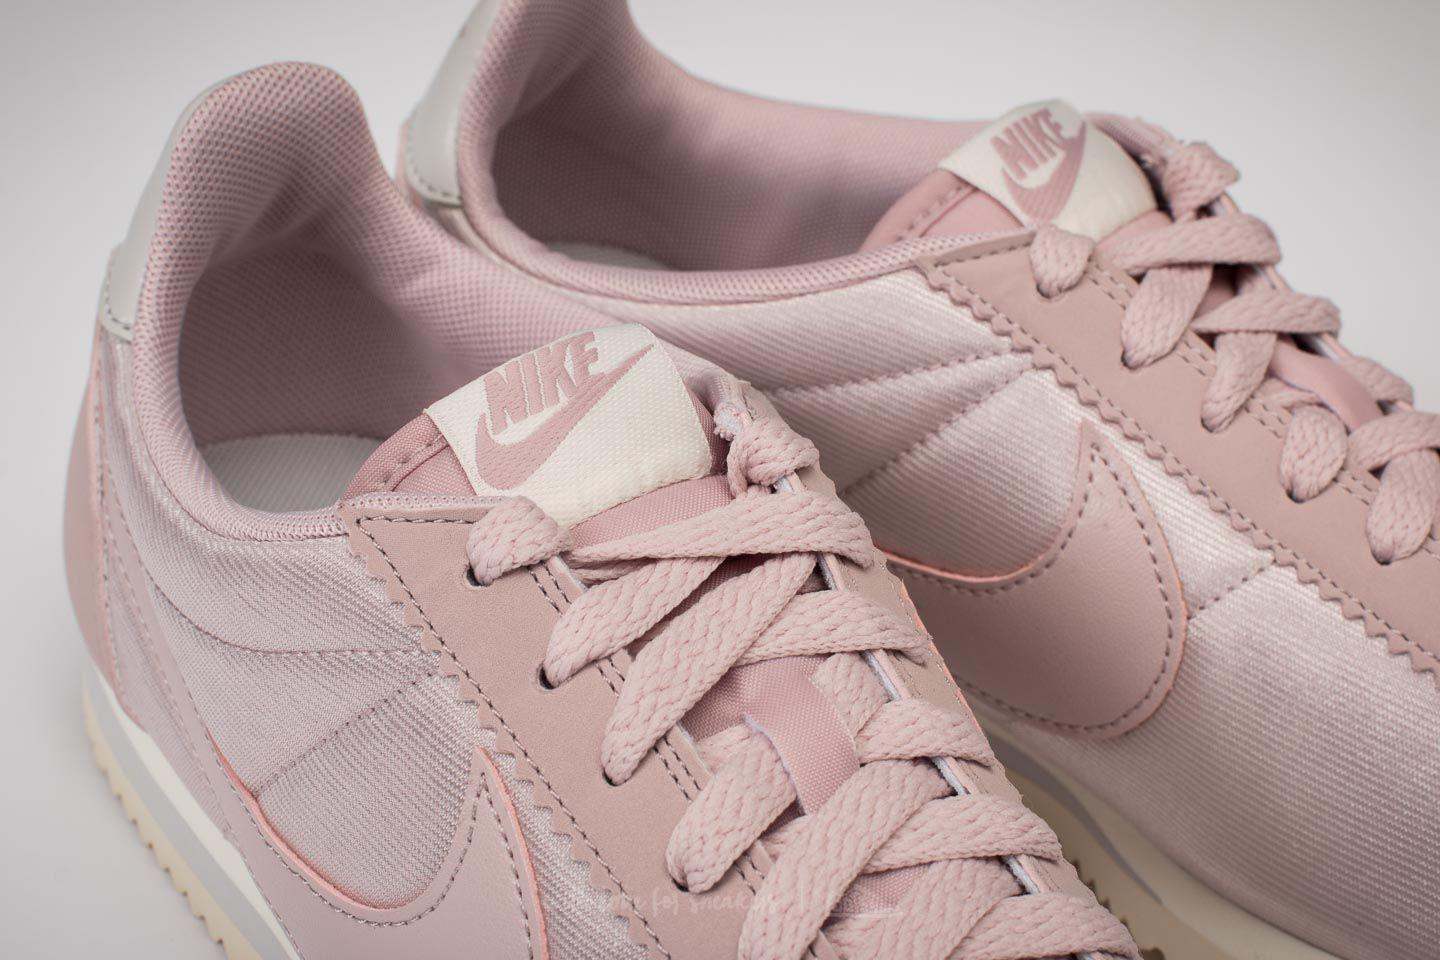 f8bfc0cb54bce ... buy nike multicolor wmns classic cortez nylon particle rose particle  rose lyst. view fullscreen a9065 ...